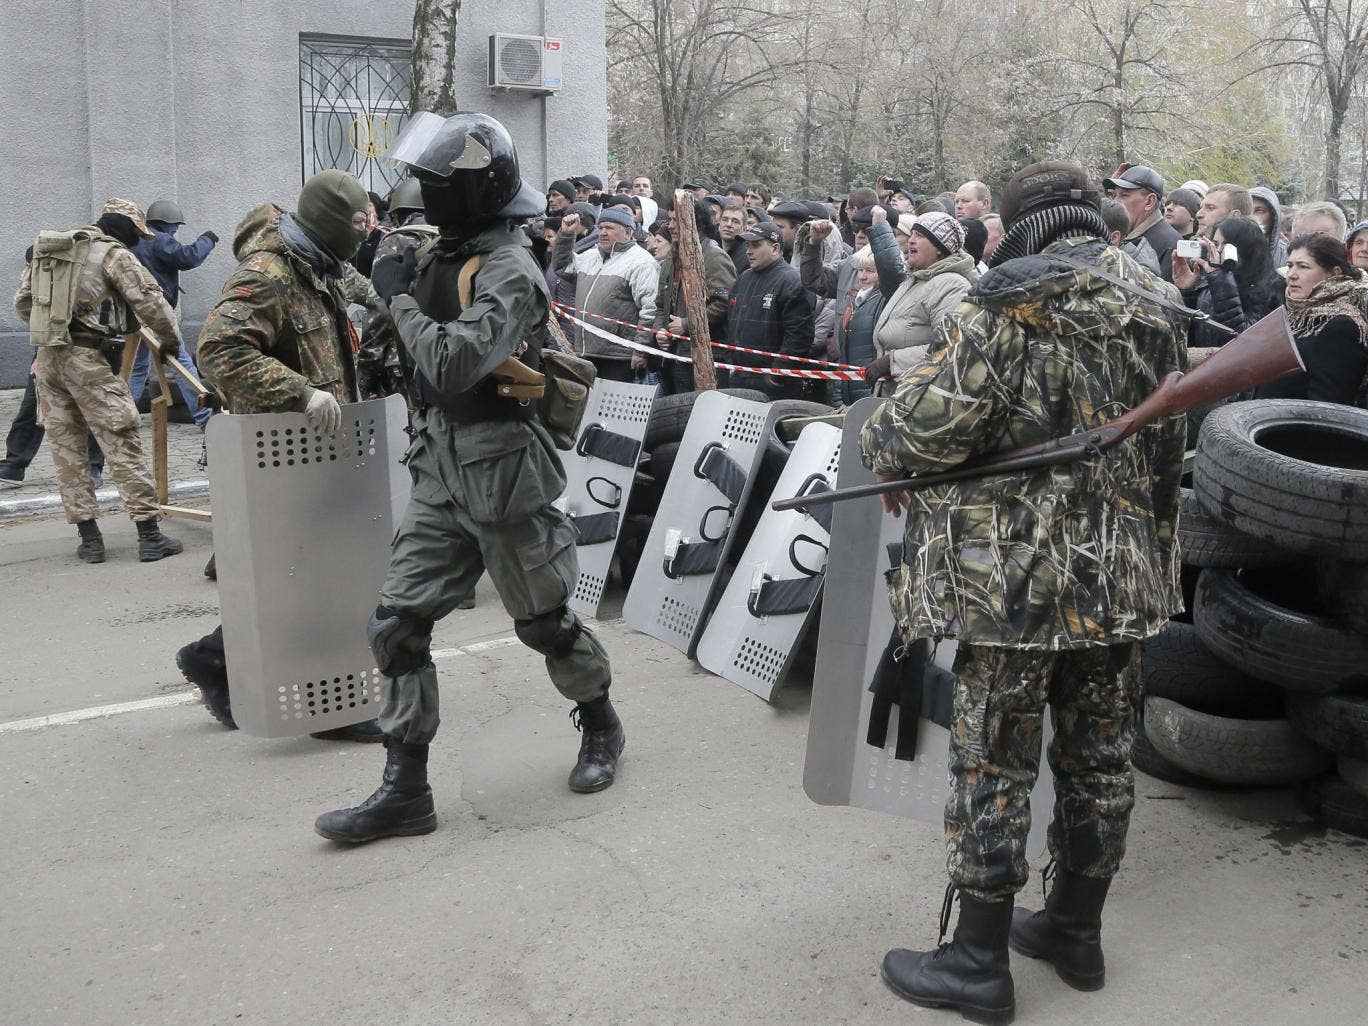 Pro-Russian activists occupy the police station carrying riot shields as people watch on, in the eastern Ukraine town of Slovyansk